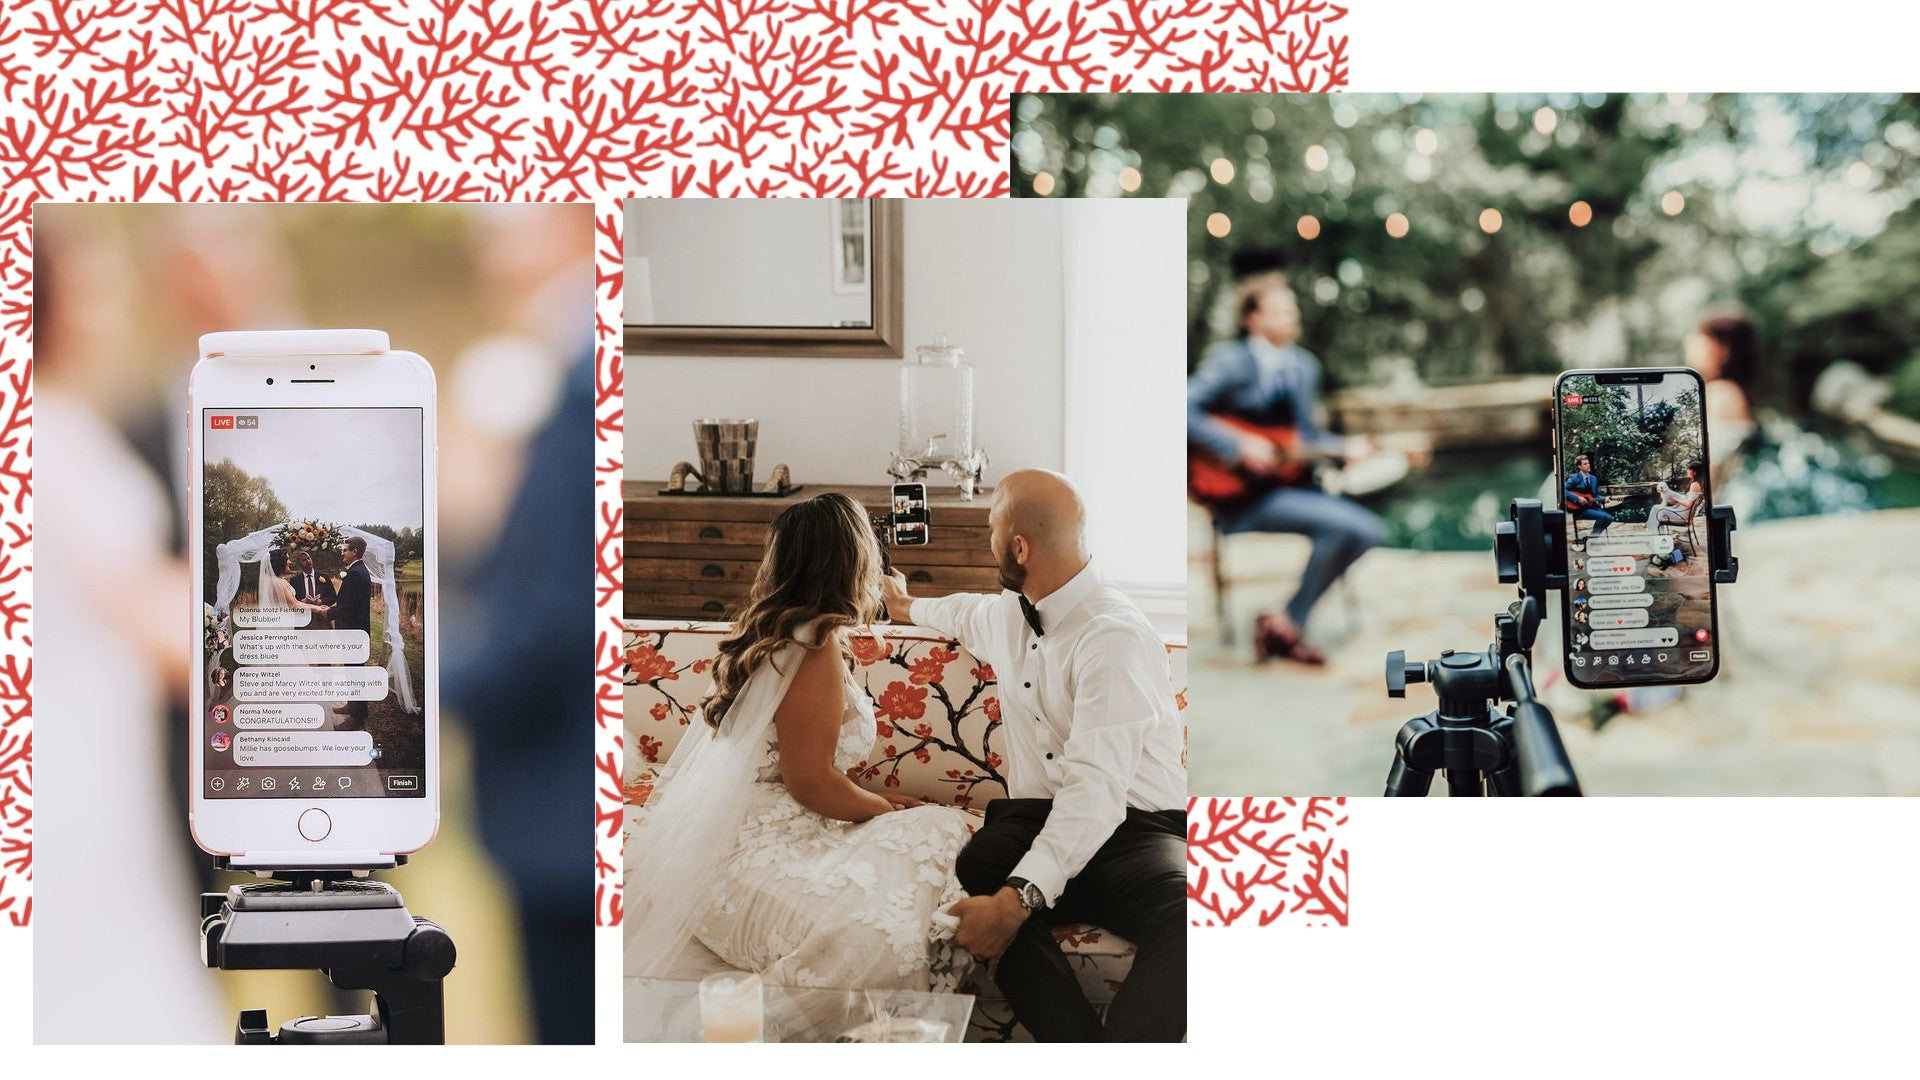 Livestream your wedding to include more family and friends